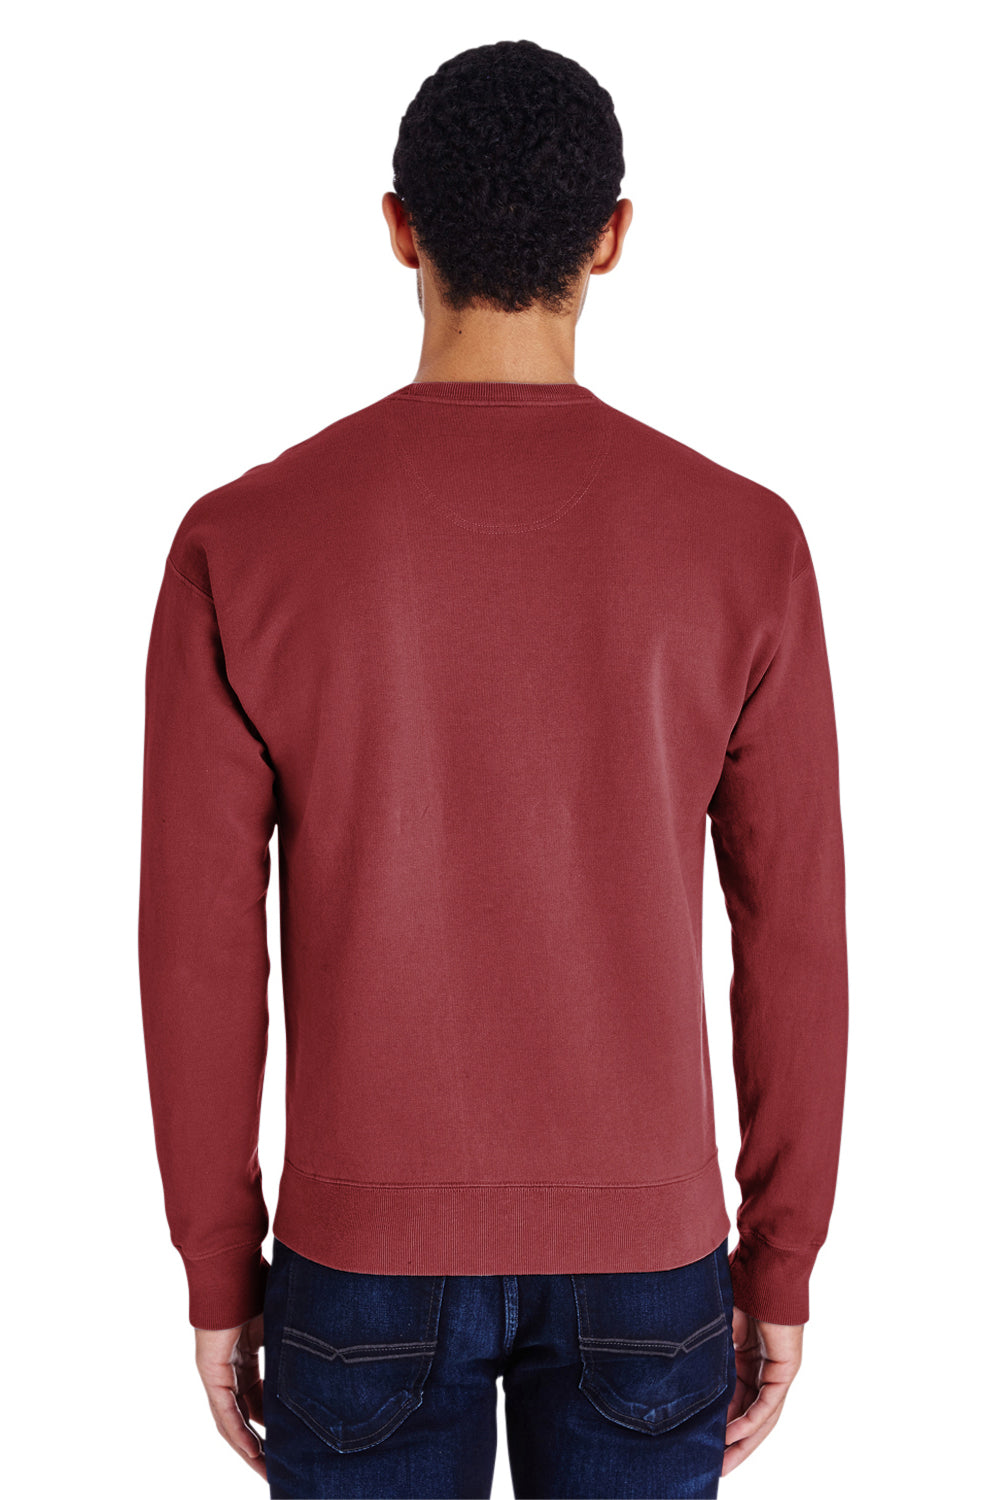 ComfortWash by Hanes GDH400 Crewneck Sweatshirt Cayenne Red Back